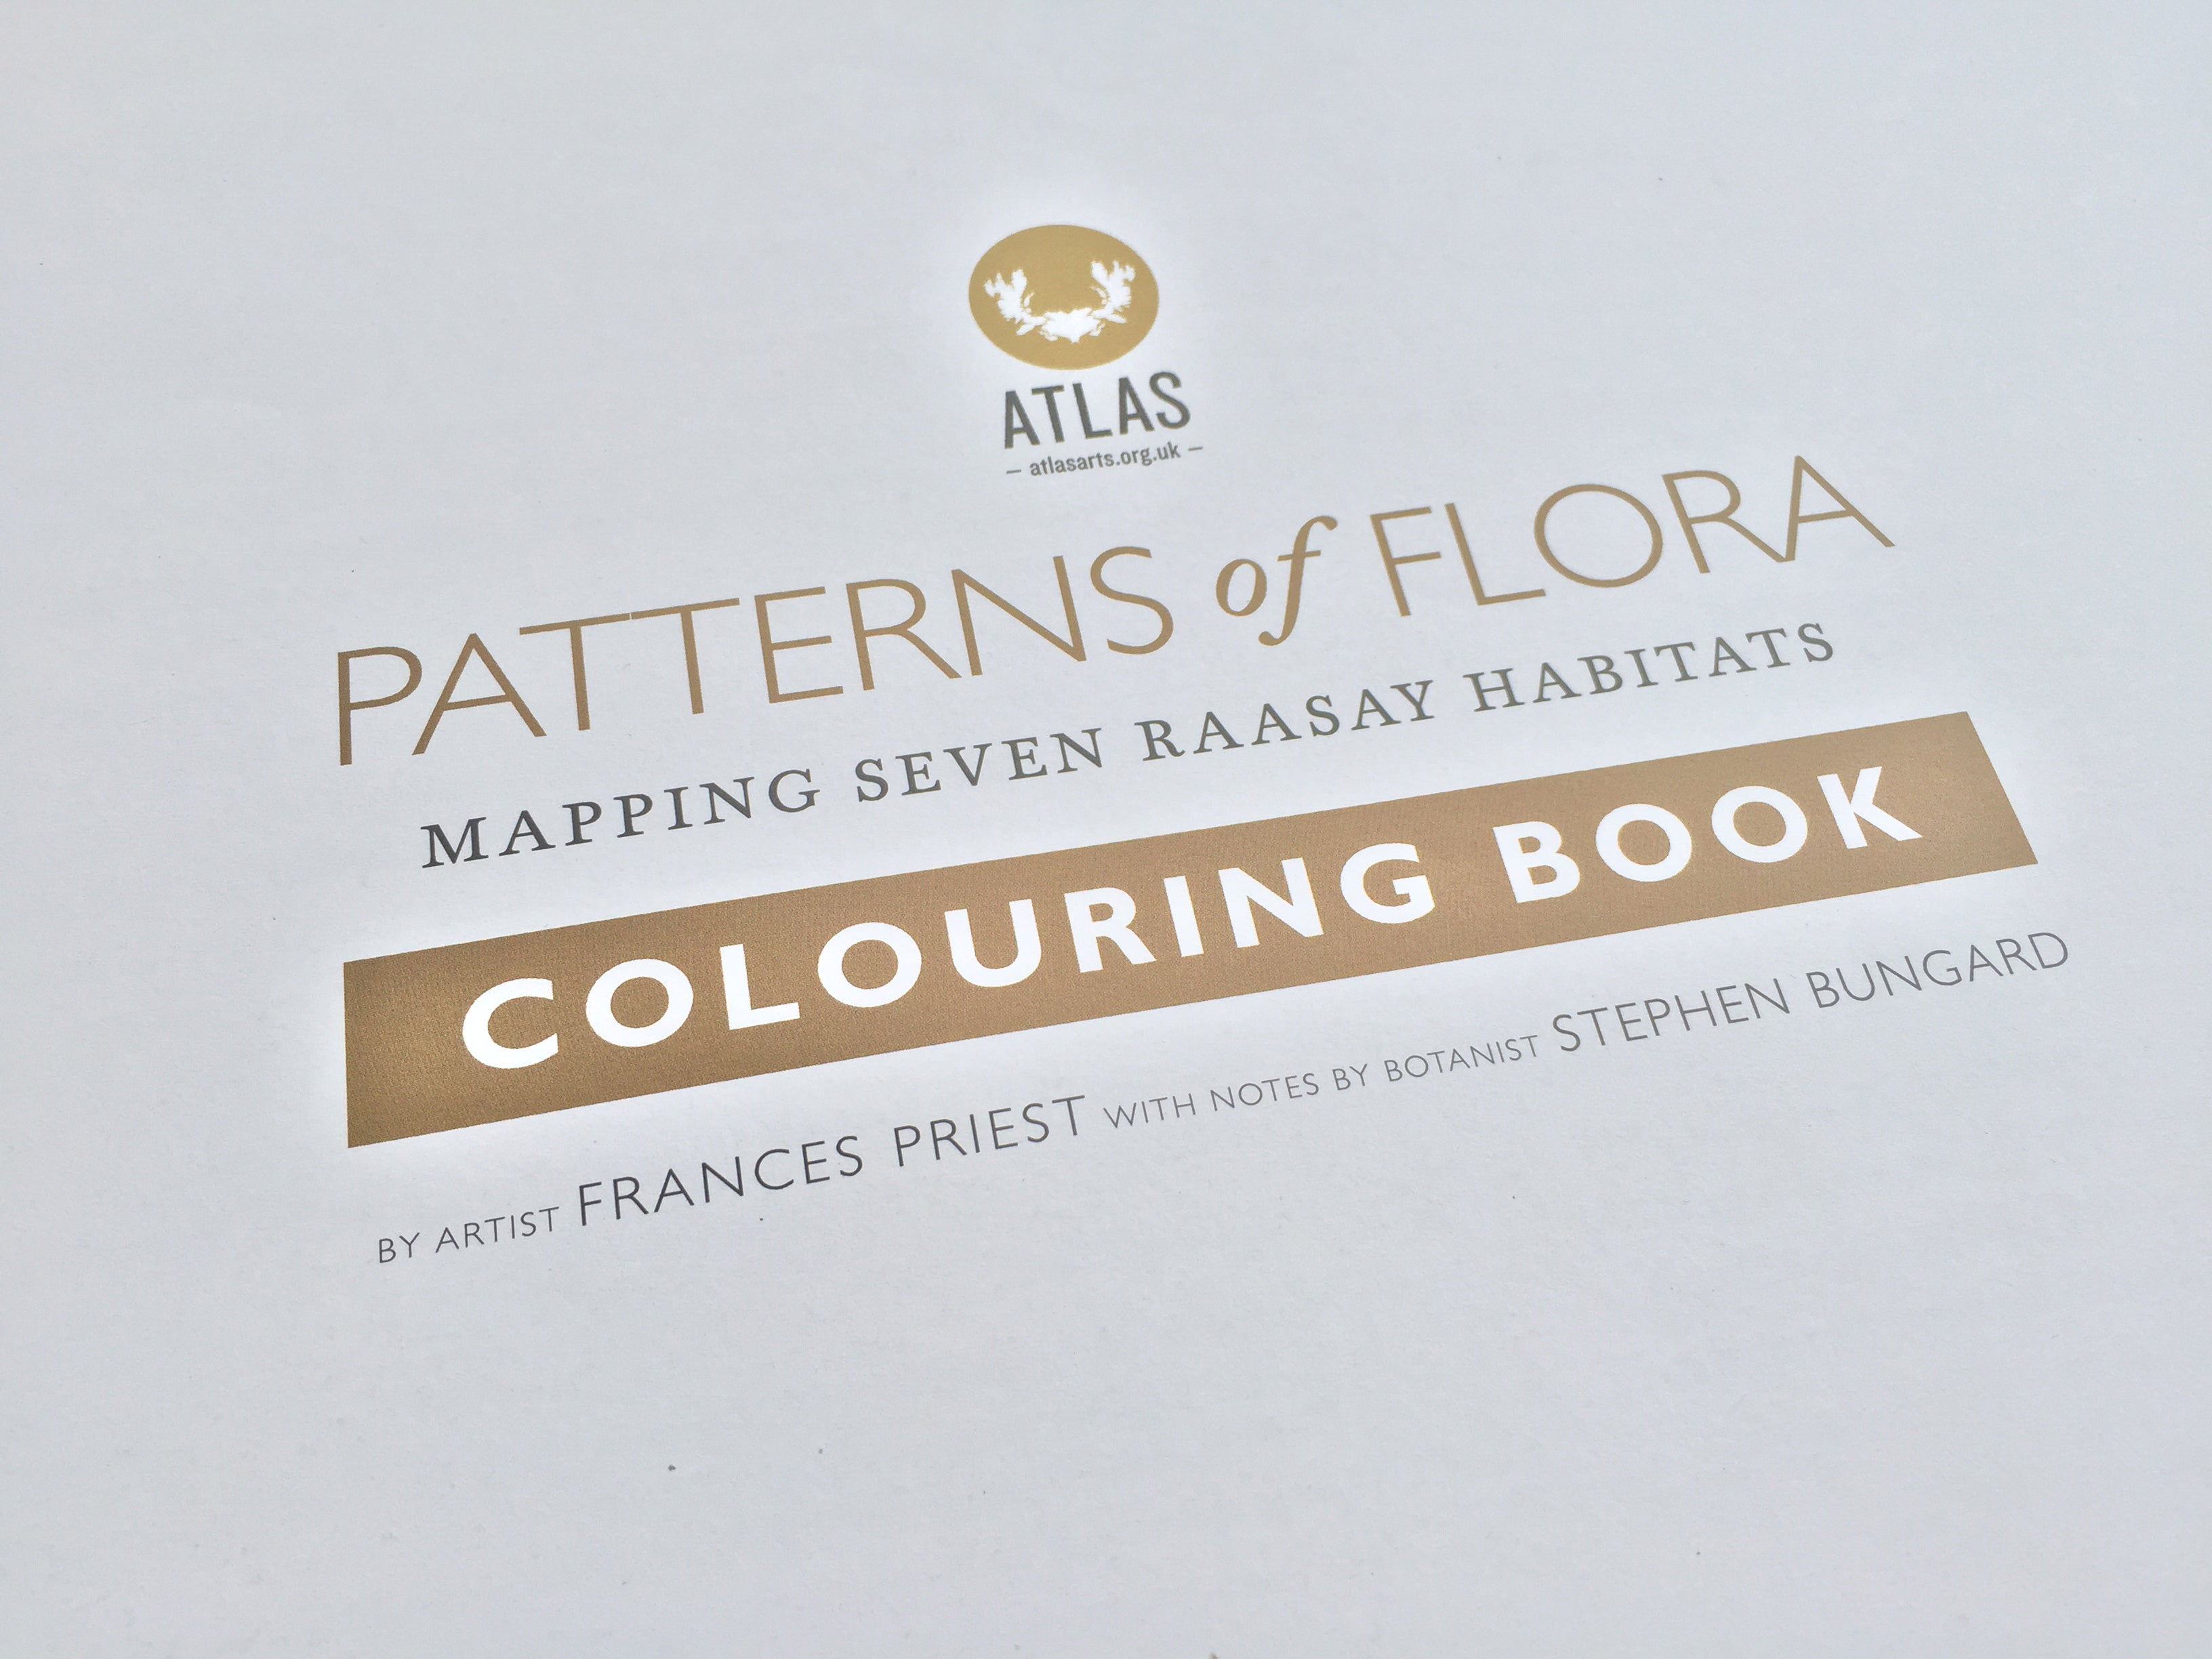 Two Patterns of Flora Colouring Books for £20 (+P&P)